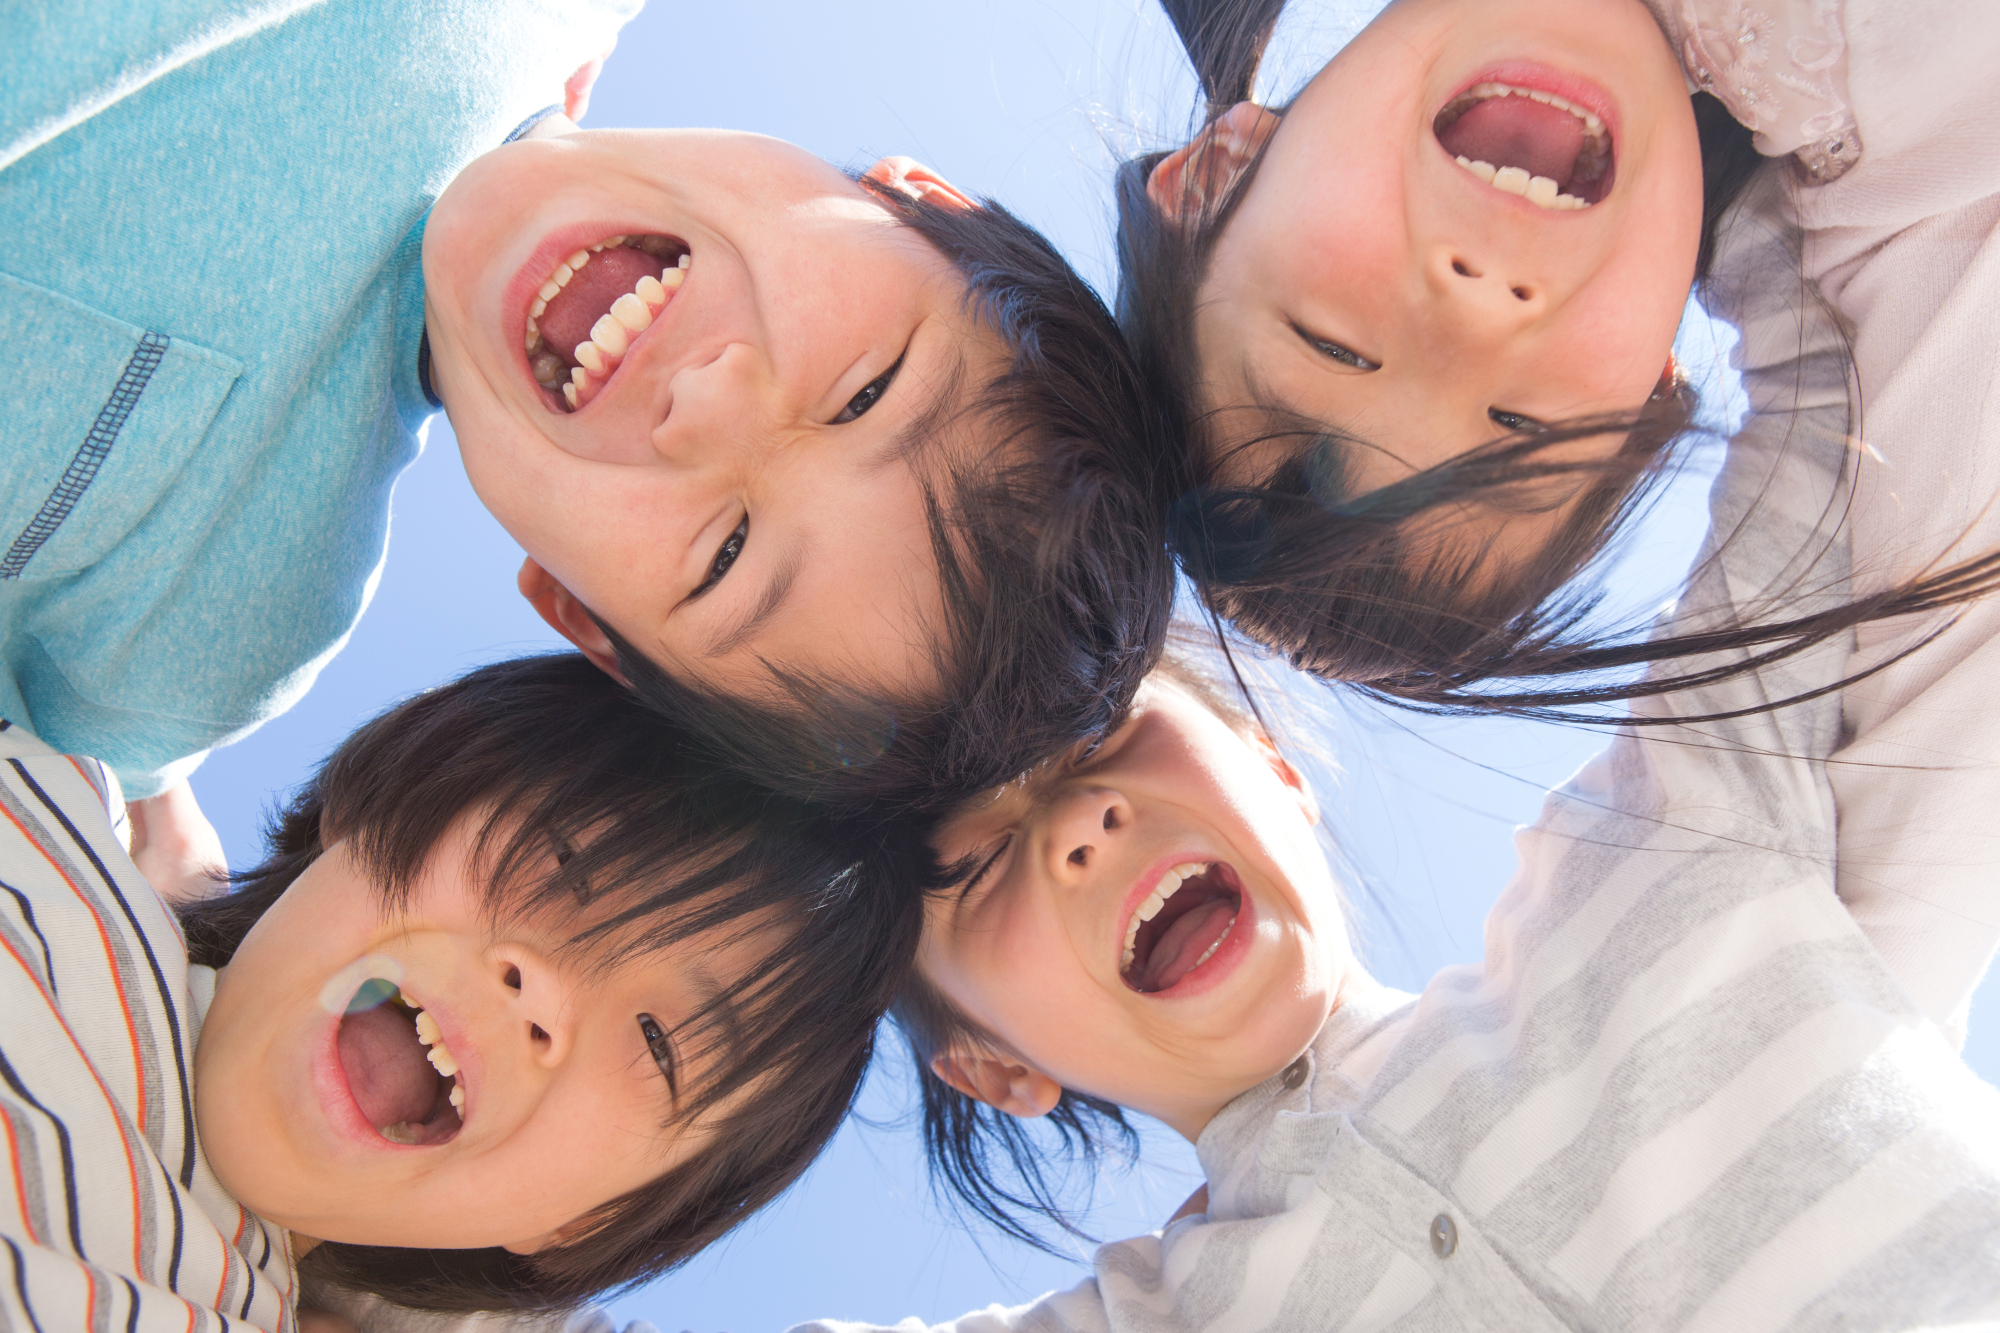 The latest government data show there were 15.53 million children in Japan as of April 1, down for the 37th consecutive year and the least since comparable data became available in 1950. | GETTY IMAGES